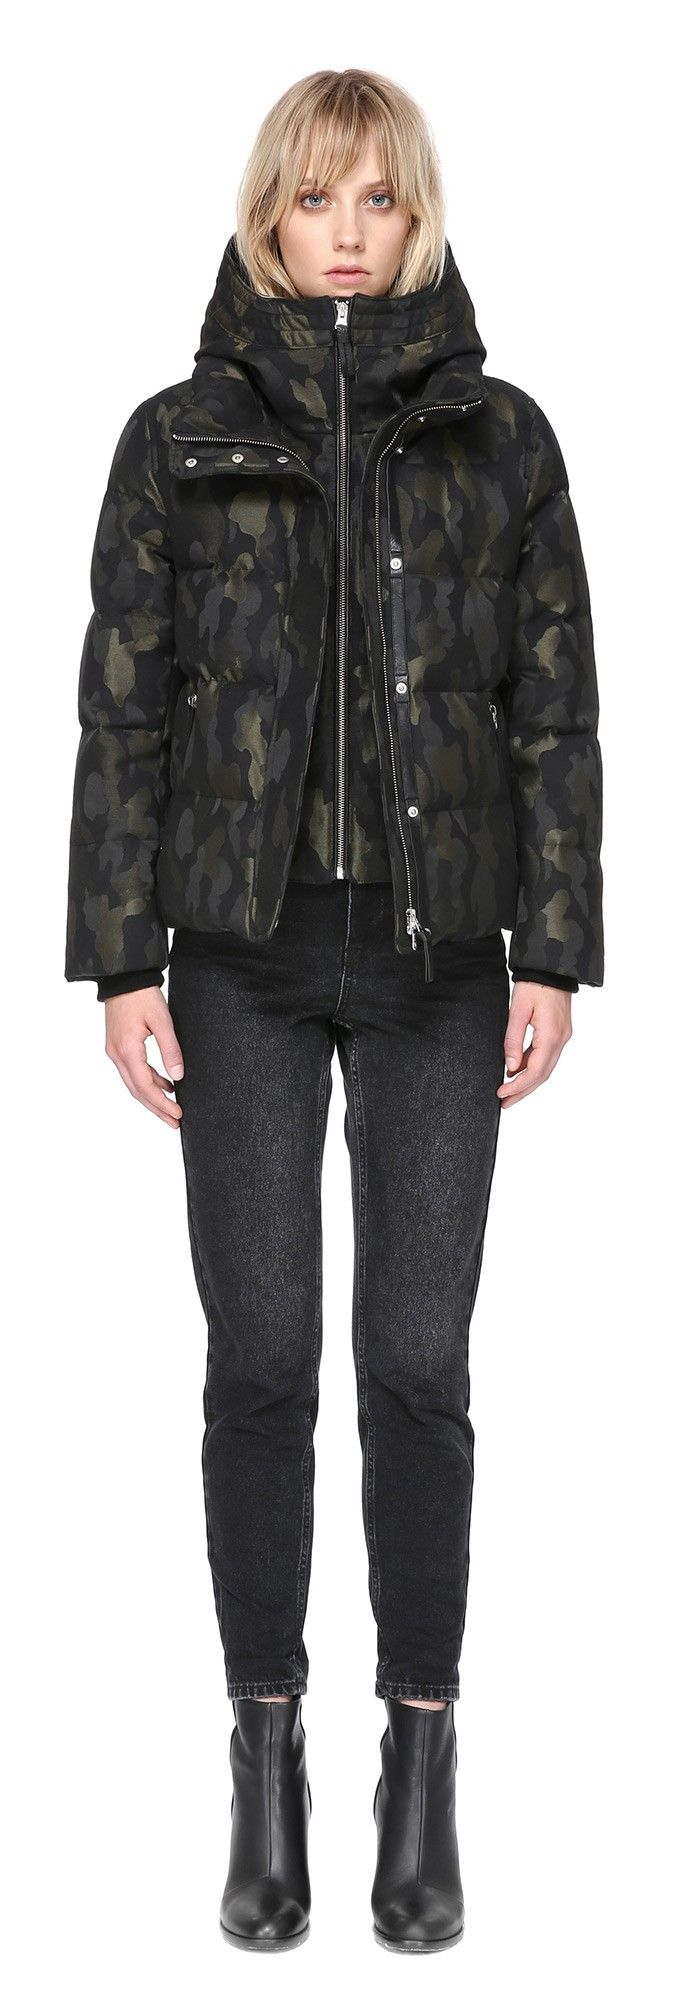 a05d9f82d8f89 CECILY-J JACQUARD DOWN COAT WITH HOOD IN CAMO | Women's Down Coats ...